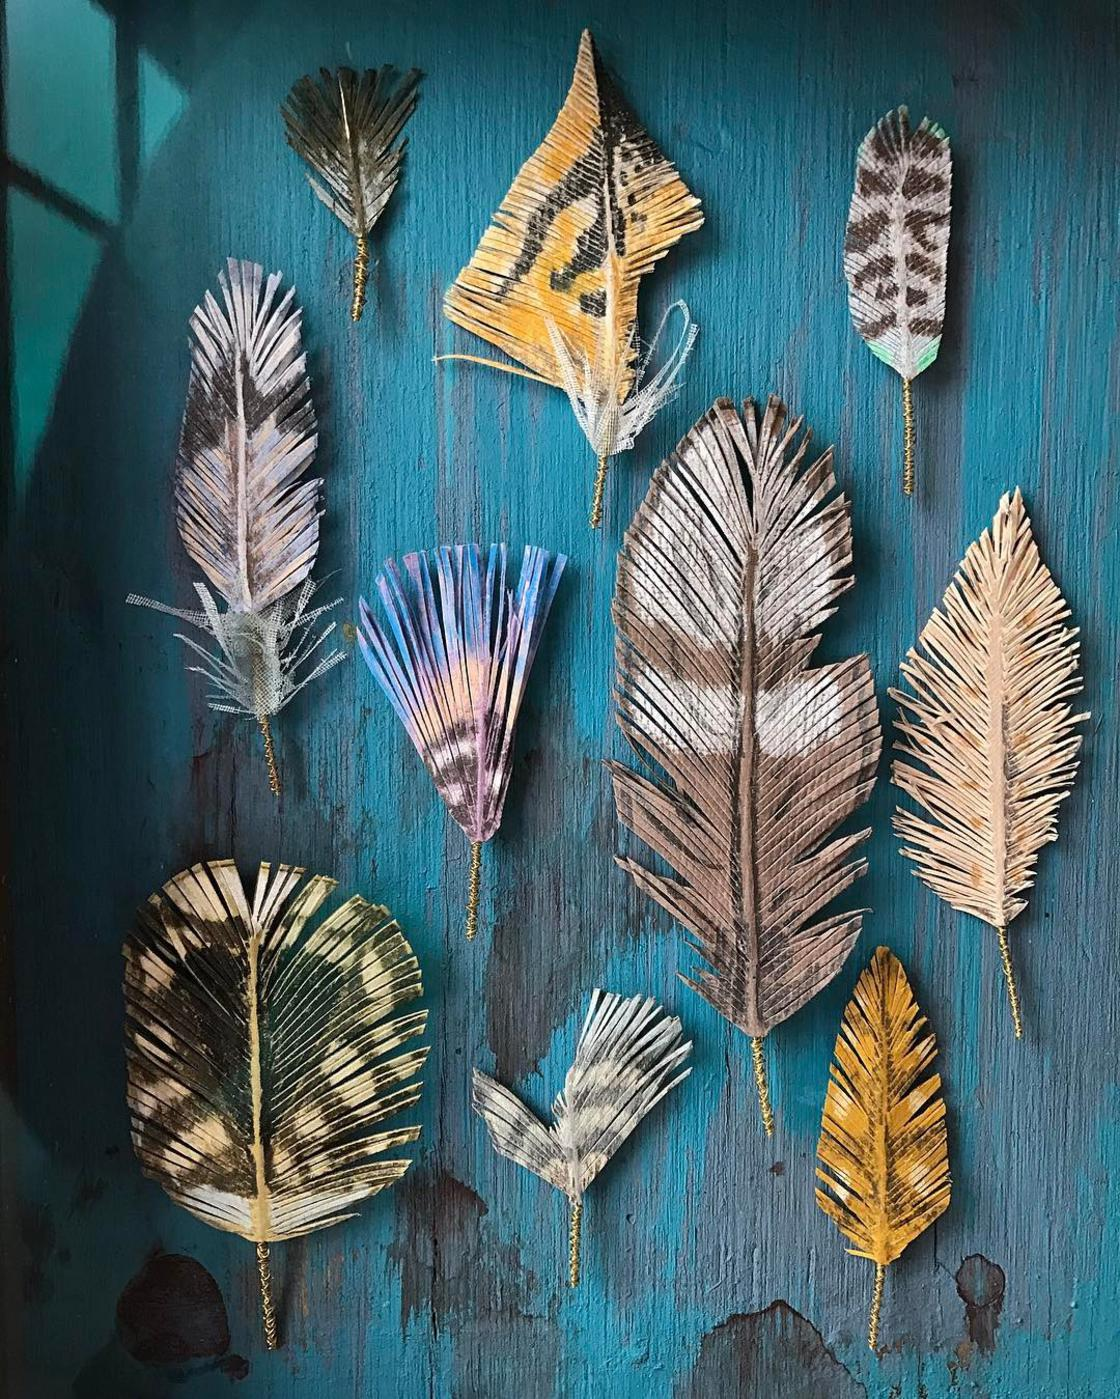 Paper Nature - The delicate paper creations of Woodlucker